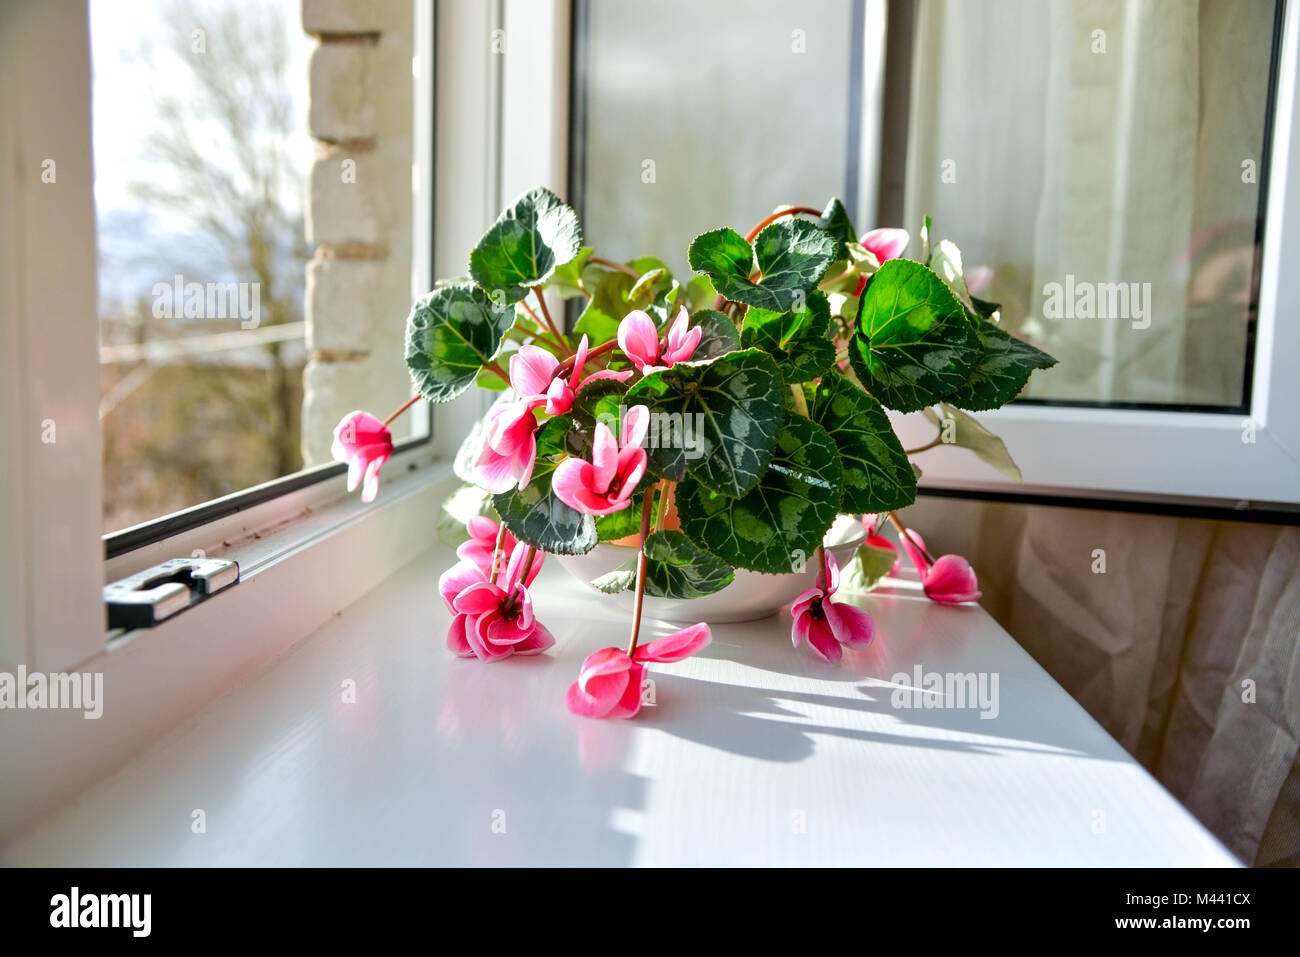 Wilted colorful variegated white and pink cyclamen flowers with ornamental leaves cultivated as indoor houseplants on window sill with open windows, i Stock Photo